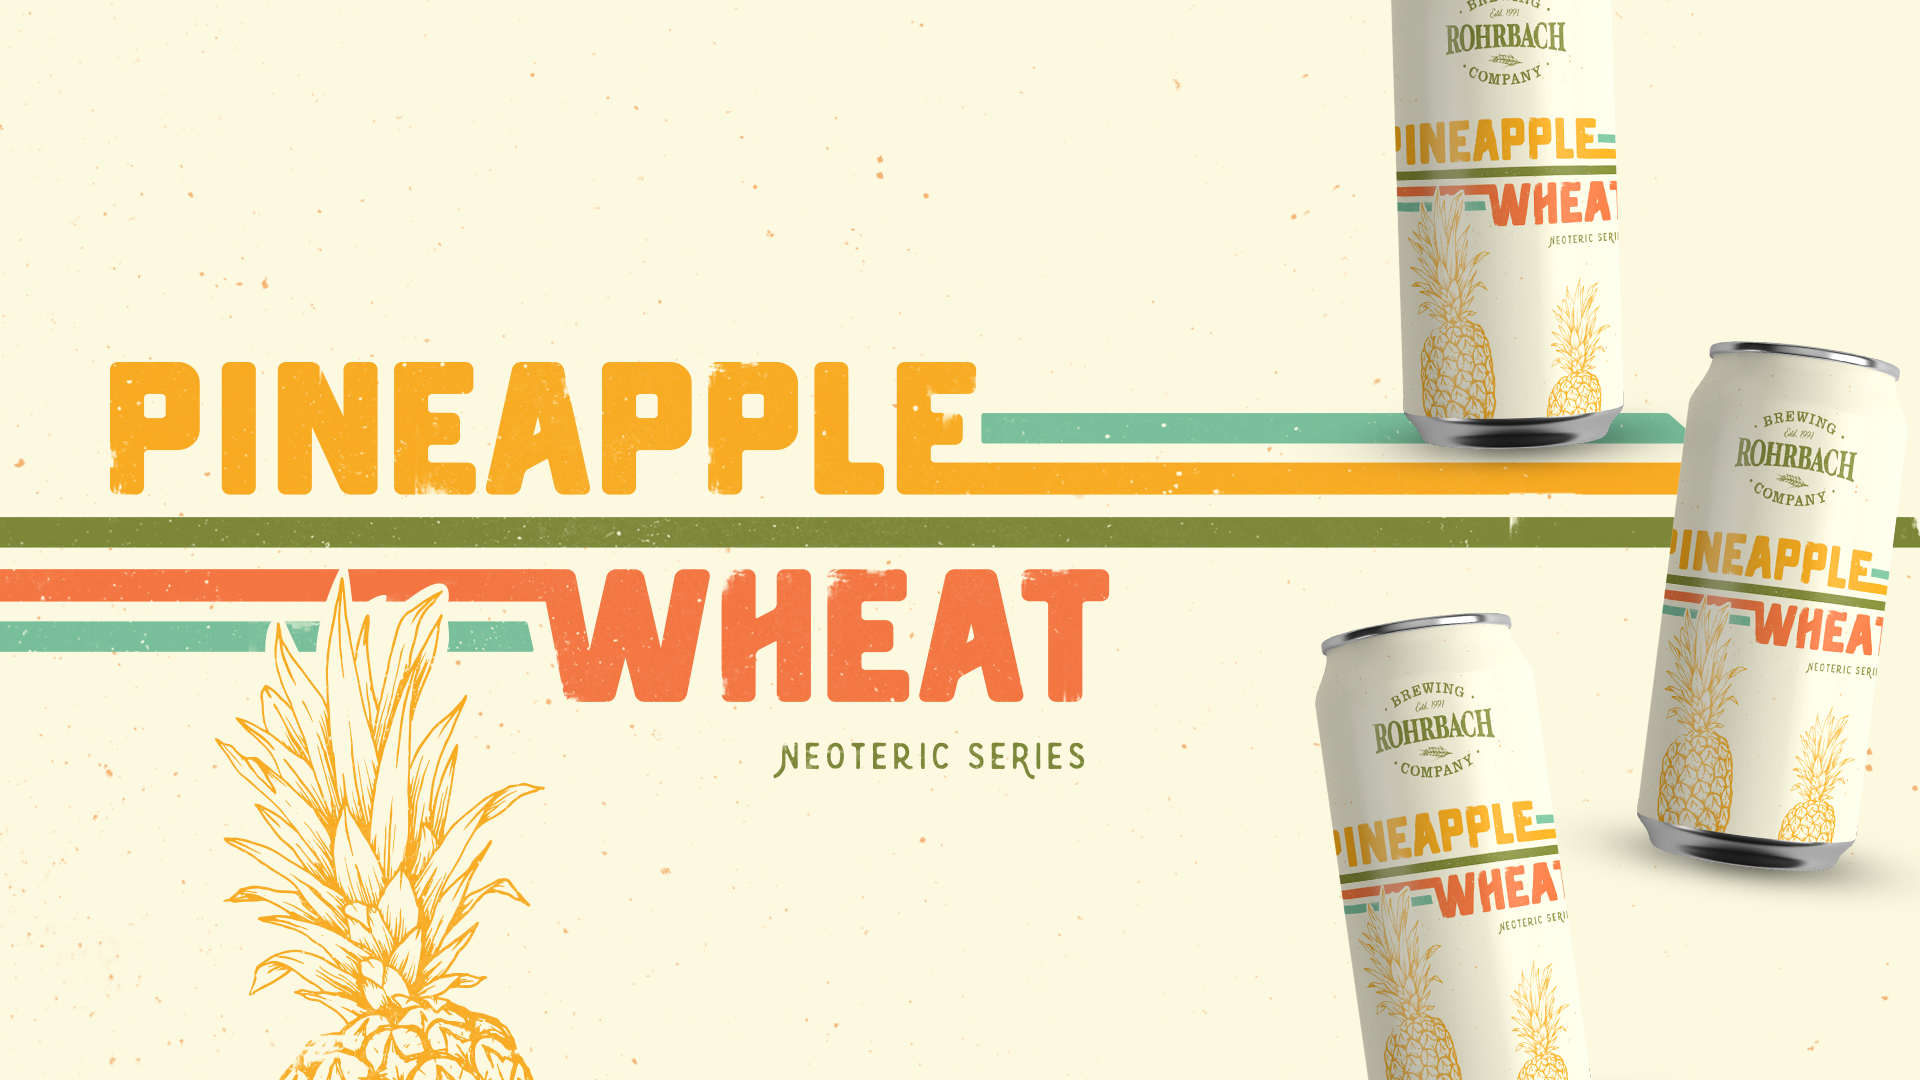 PineappleWheat_FBcover.jpg